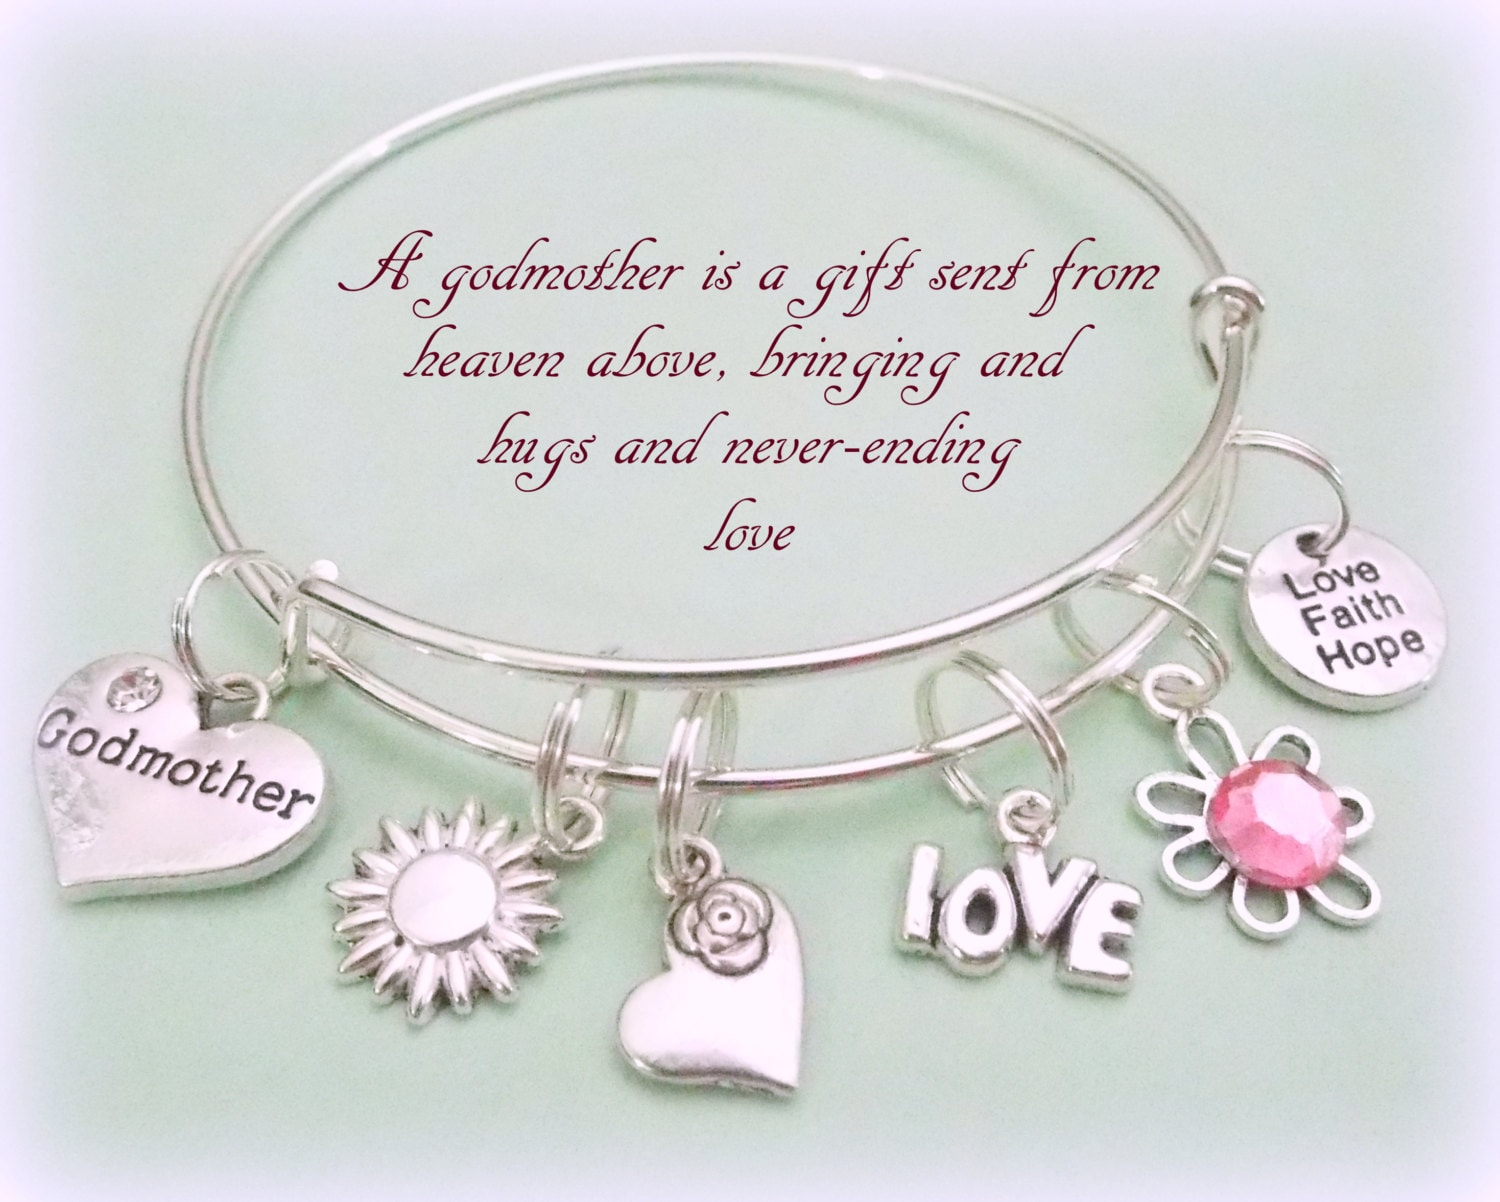 Godmother Birthday Gift Charm Bracelet For Her Personalized Goddaughter To Custom Jewelry